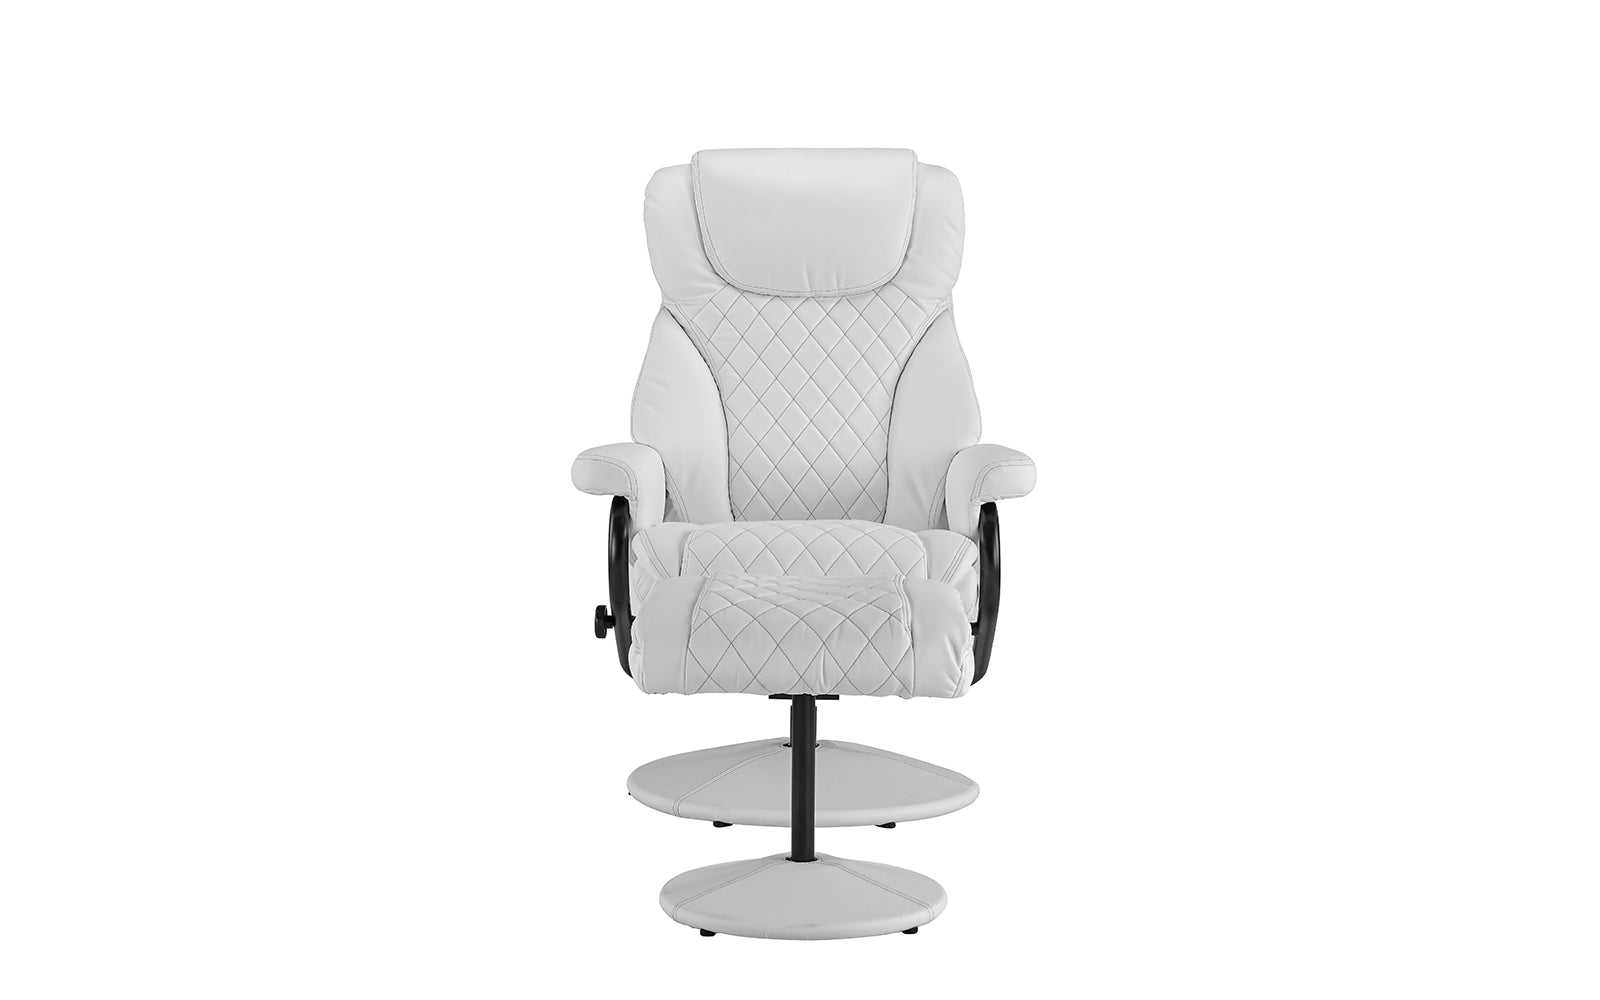 High Back Leather Executive Chair Footrest Image